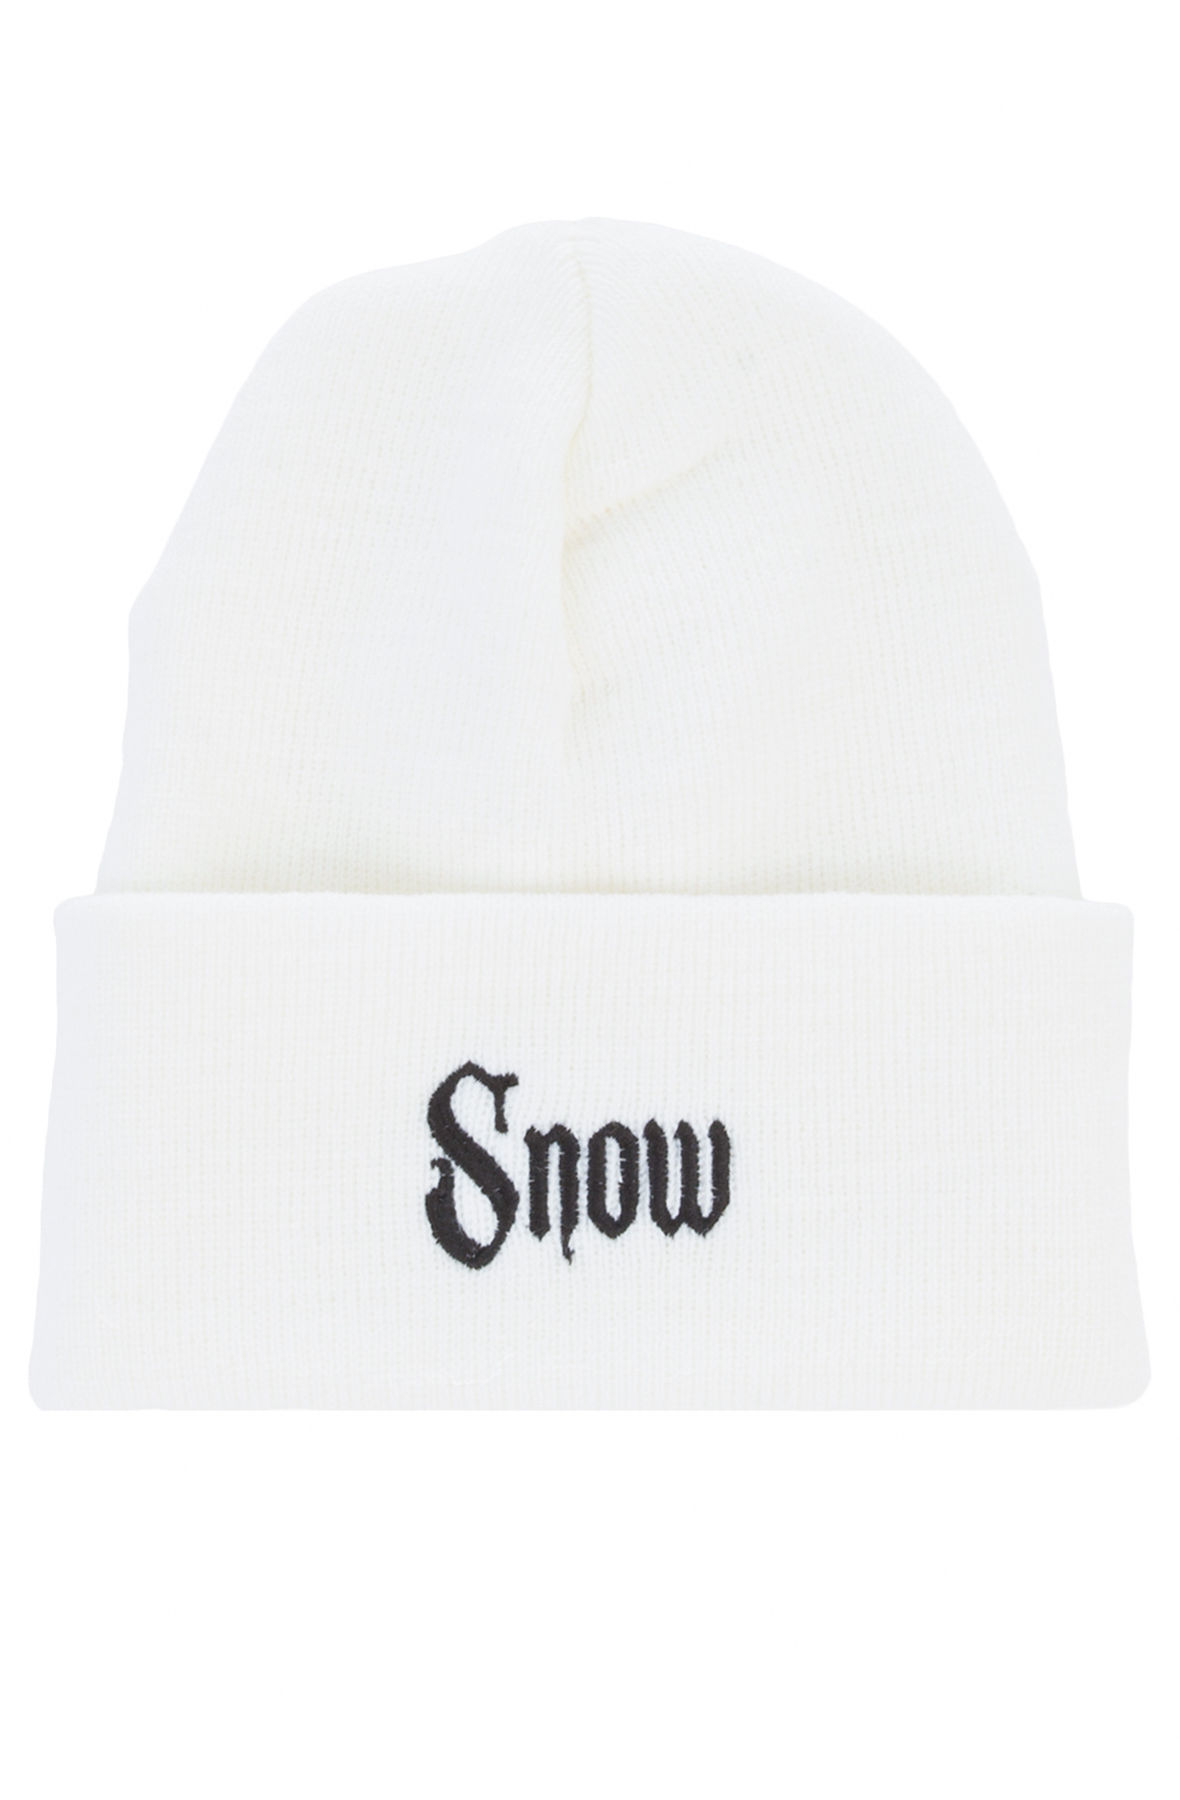 Image of The Snow Girl Beanie in White